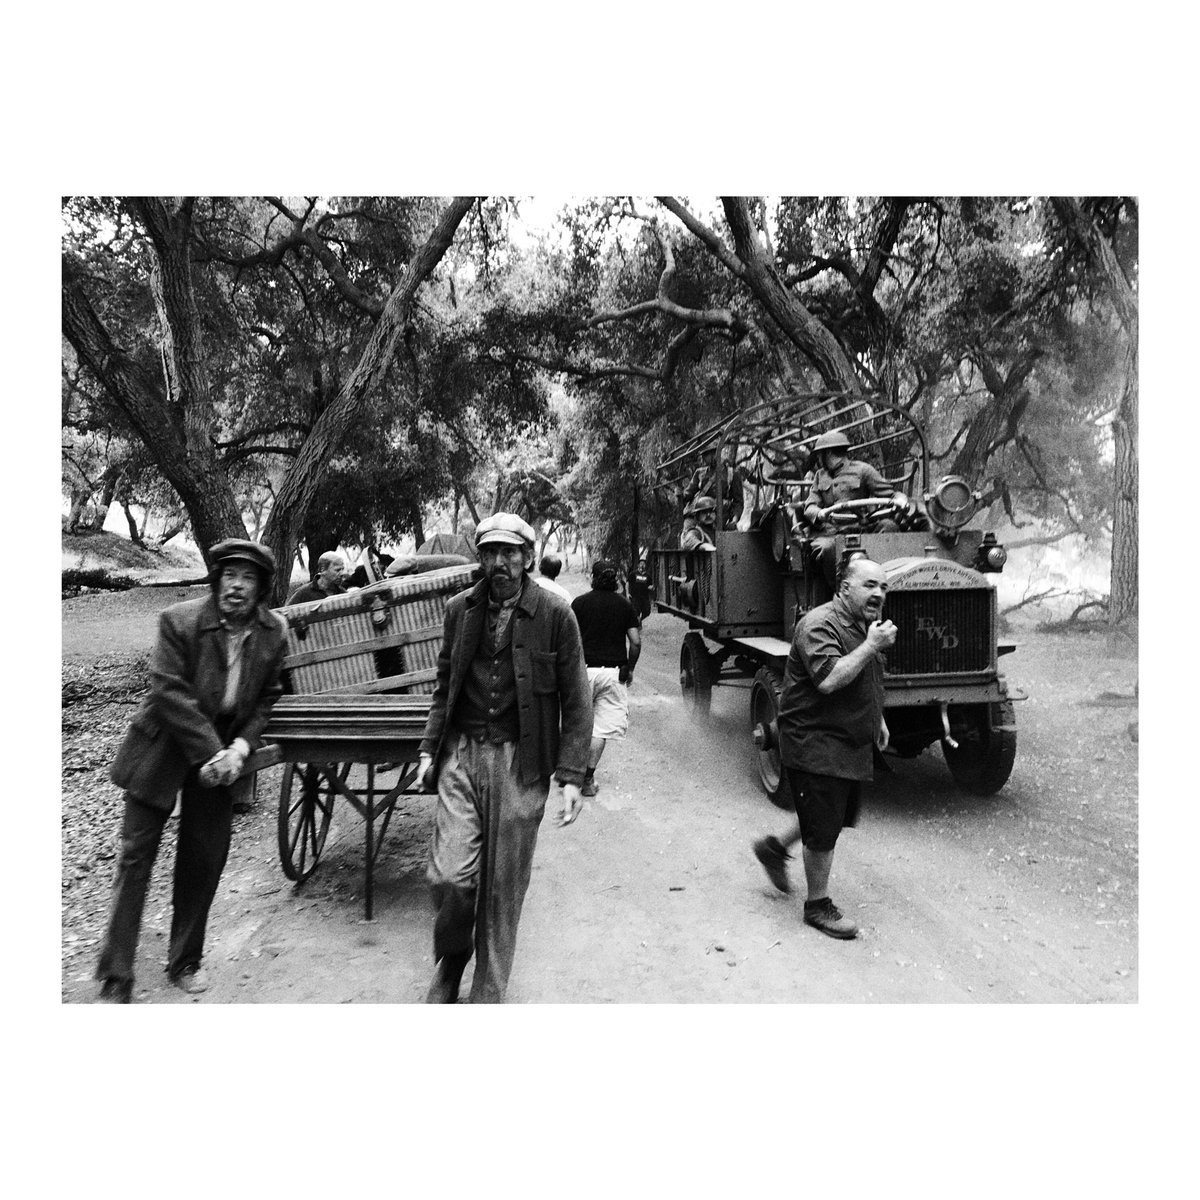 a little #bts from this past on week one of #timeless #s2 #whenwillwego ❤️???????? @NBCTimeless https://t.co/lo5qvvXgyD